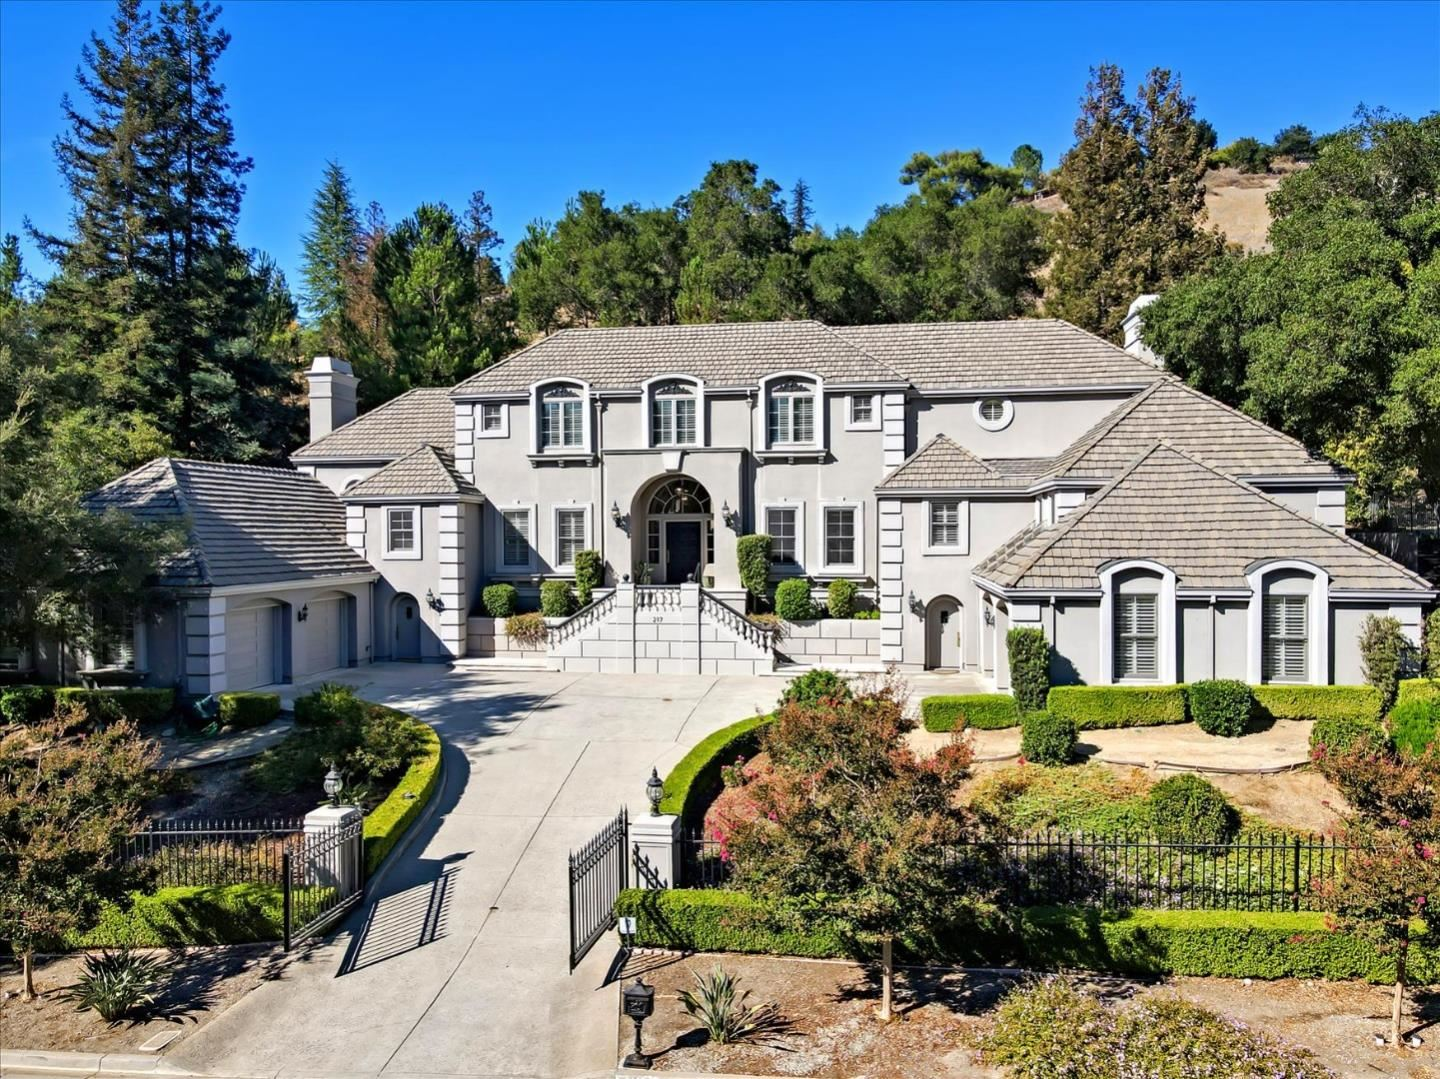 Photo for 217 Forrester Road, LOS GATOS, CA 95032 (MLS # ML81865116)